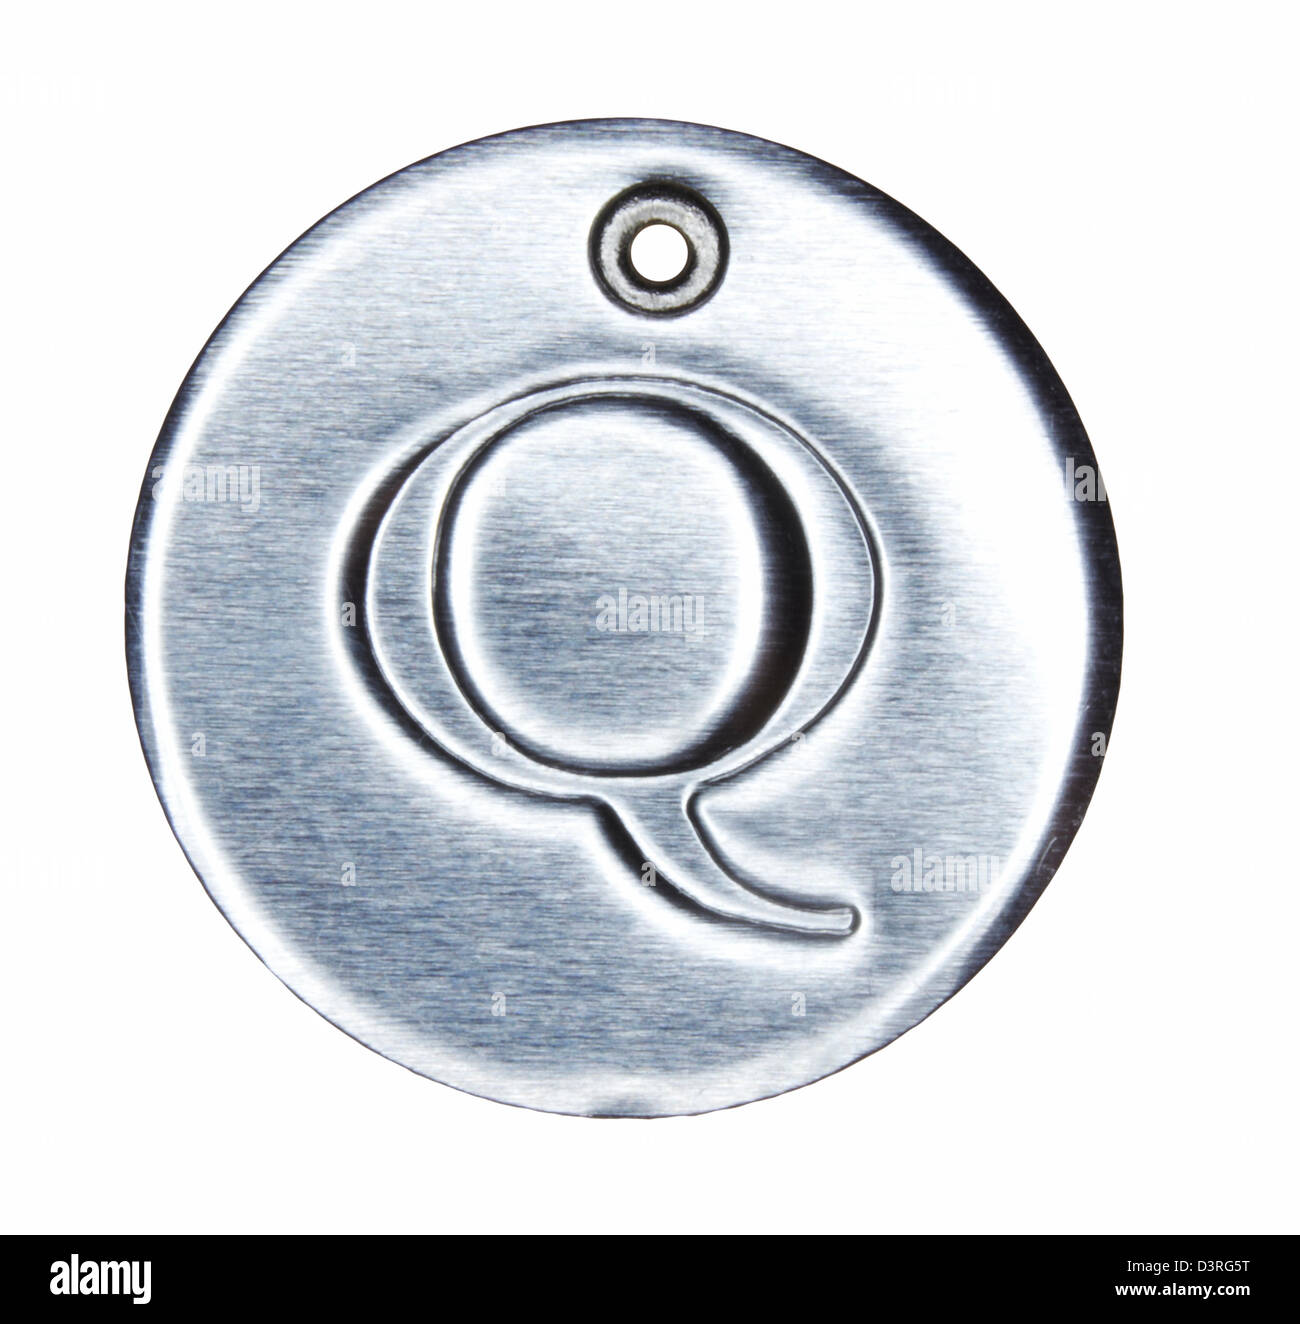 Brushed metal letter of the alphabet Q - Stock Image